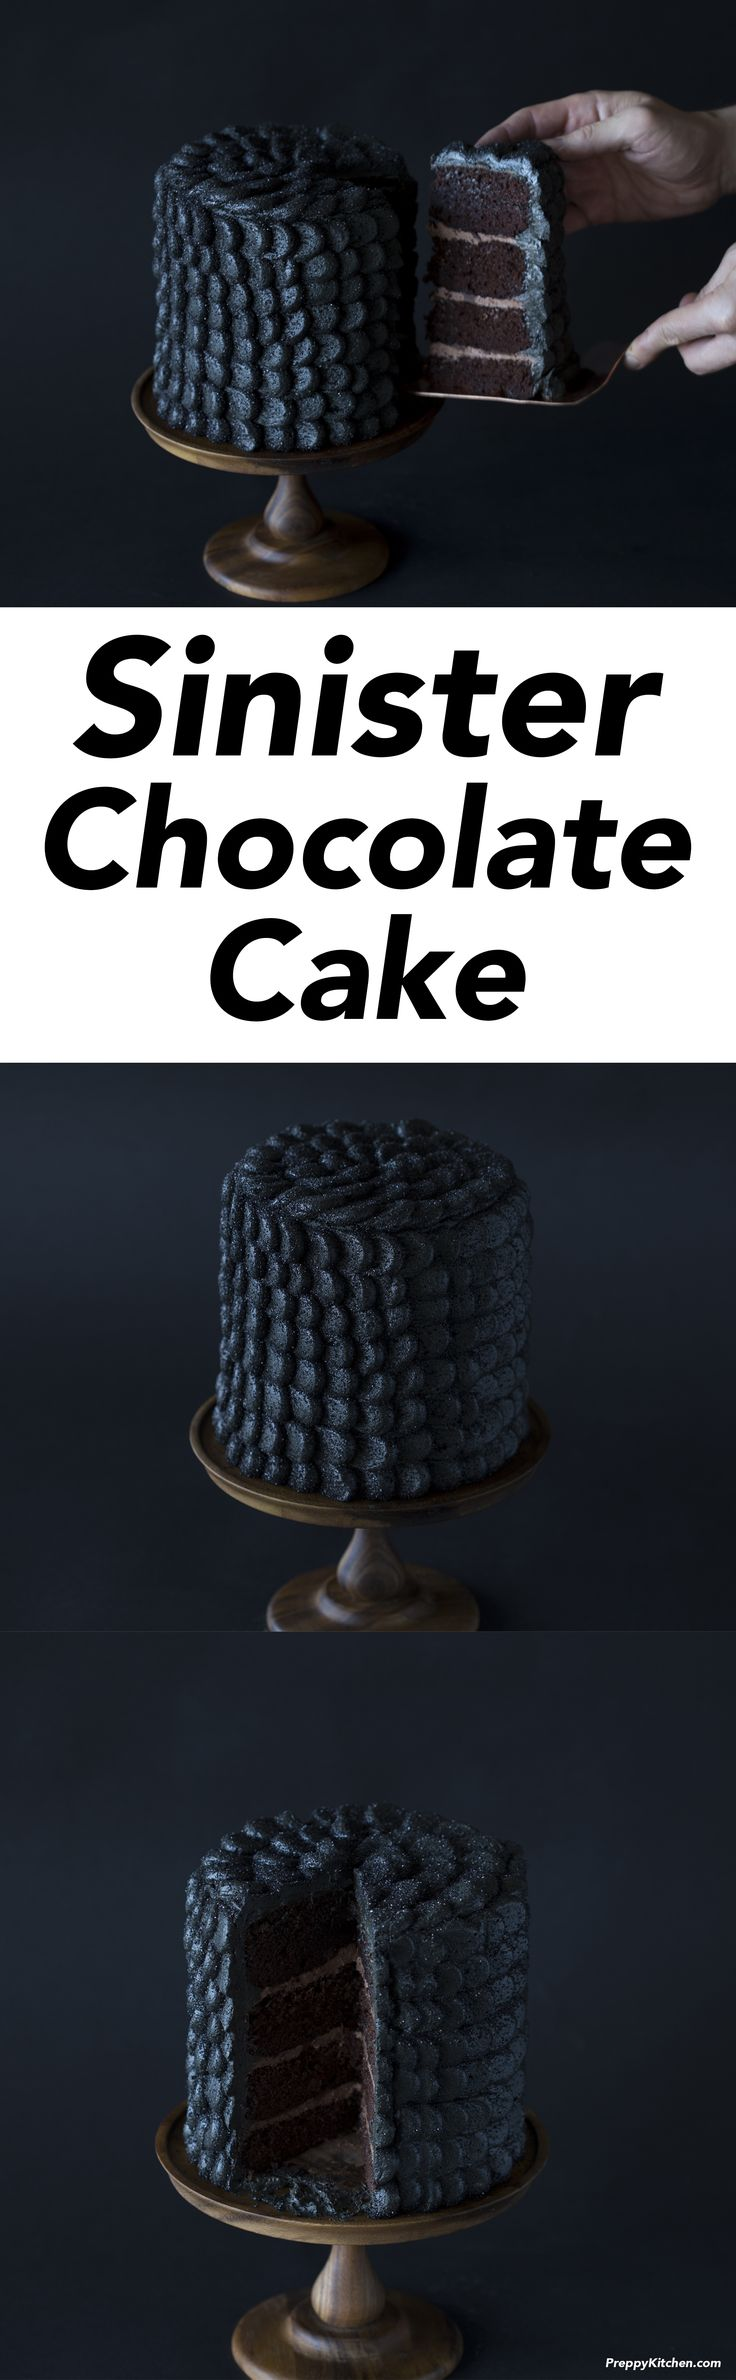 Sinfully delicious or pure evil?? This chocolate cake is coated in delicious black scales giving it a nefarious look that's perfect for Halloween! Click over for the full recipe up on the blog